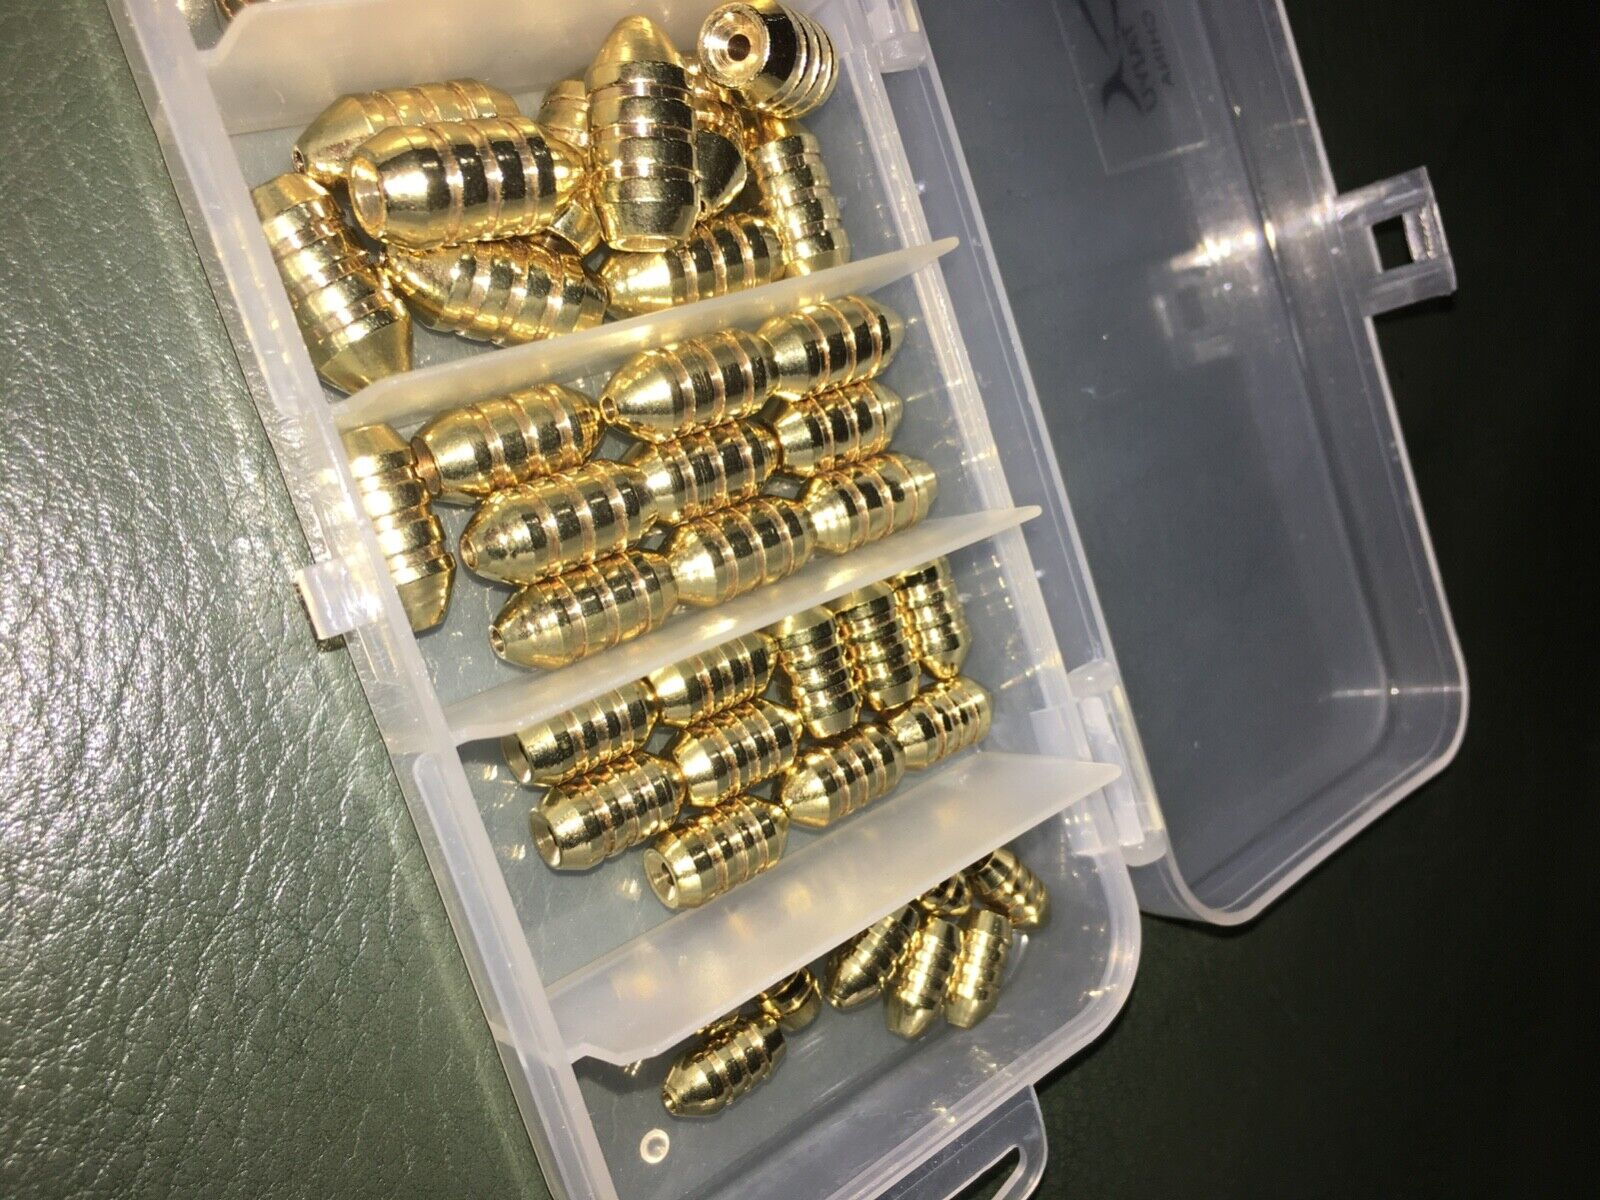 50 Count NEW, UN-USED High-quality Brass Fishing Weights 1.8-10g - NO RESERVE  - $9.00